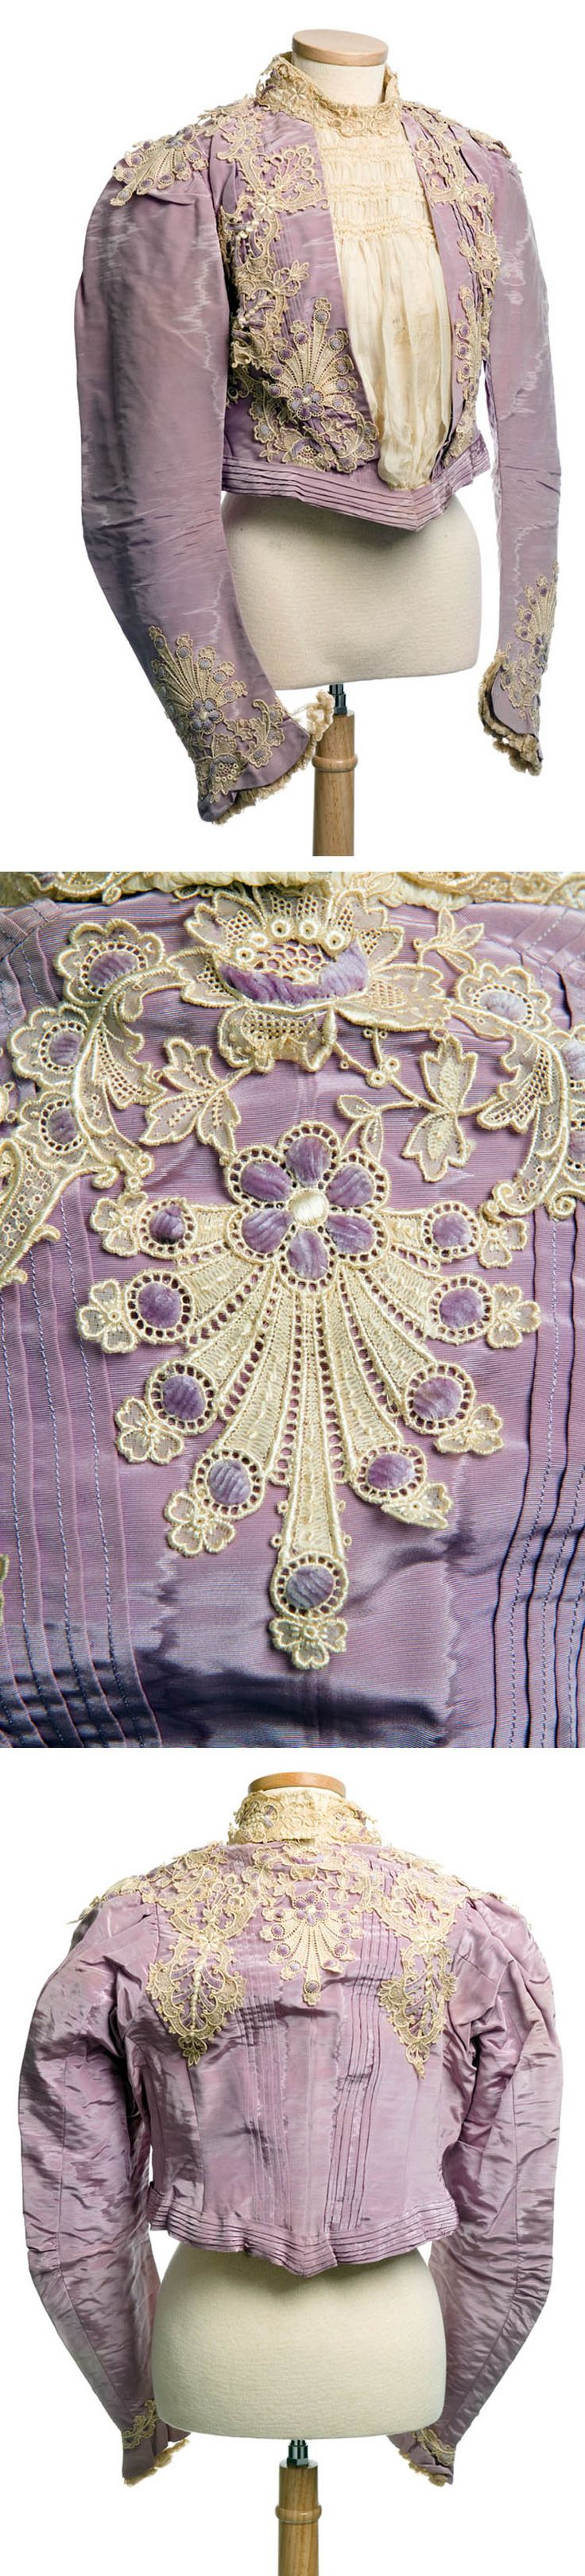 Bodice in lavender silk moiré, M. O'Brien, New York, ca. 1870s. Trimmed with embroidered eyelet lavender chenille. Front opening covered with ruched cream chiffon. Lined with lavender taffeta, it has 15 encased stays along with a white ribbon inner waistband. Probably had a matching skirt. Charleston Museum Tumblr